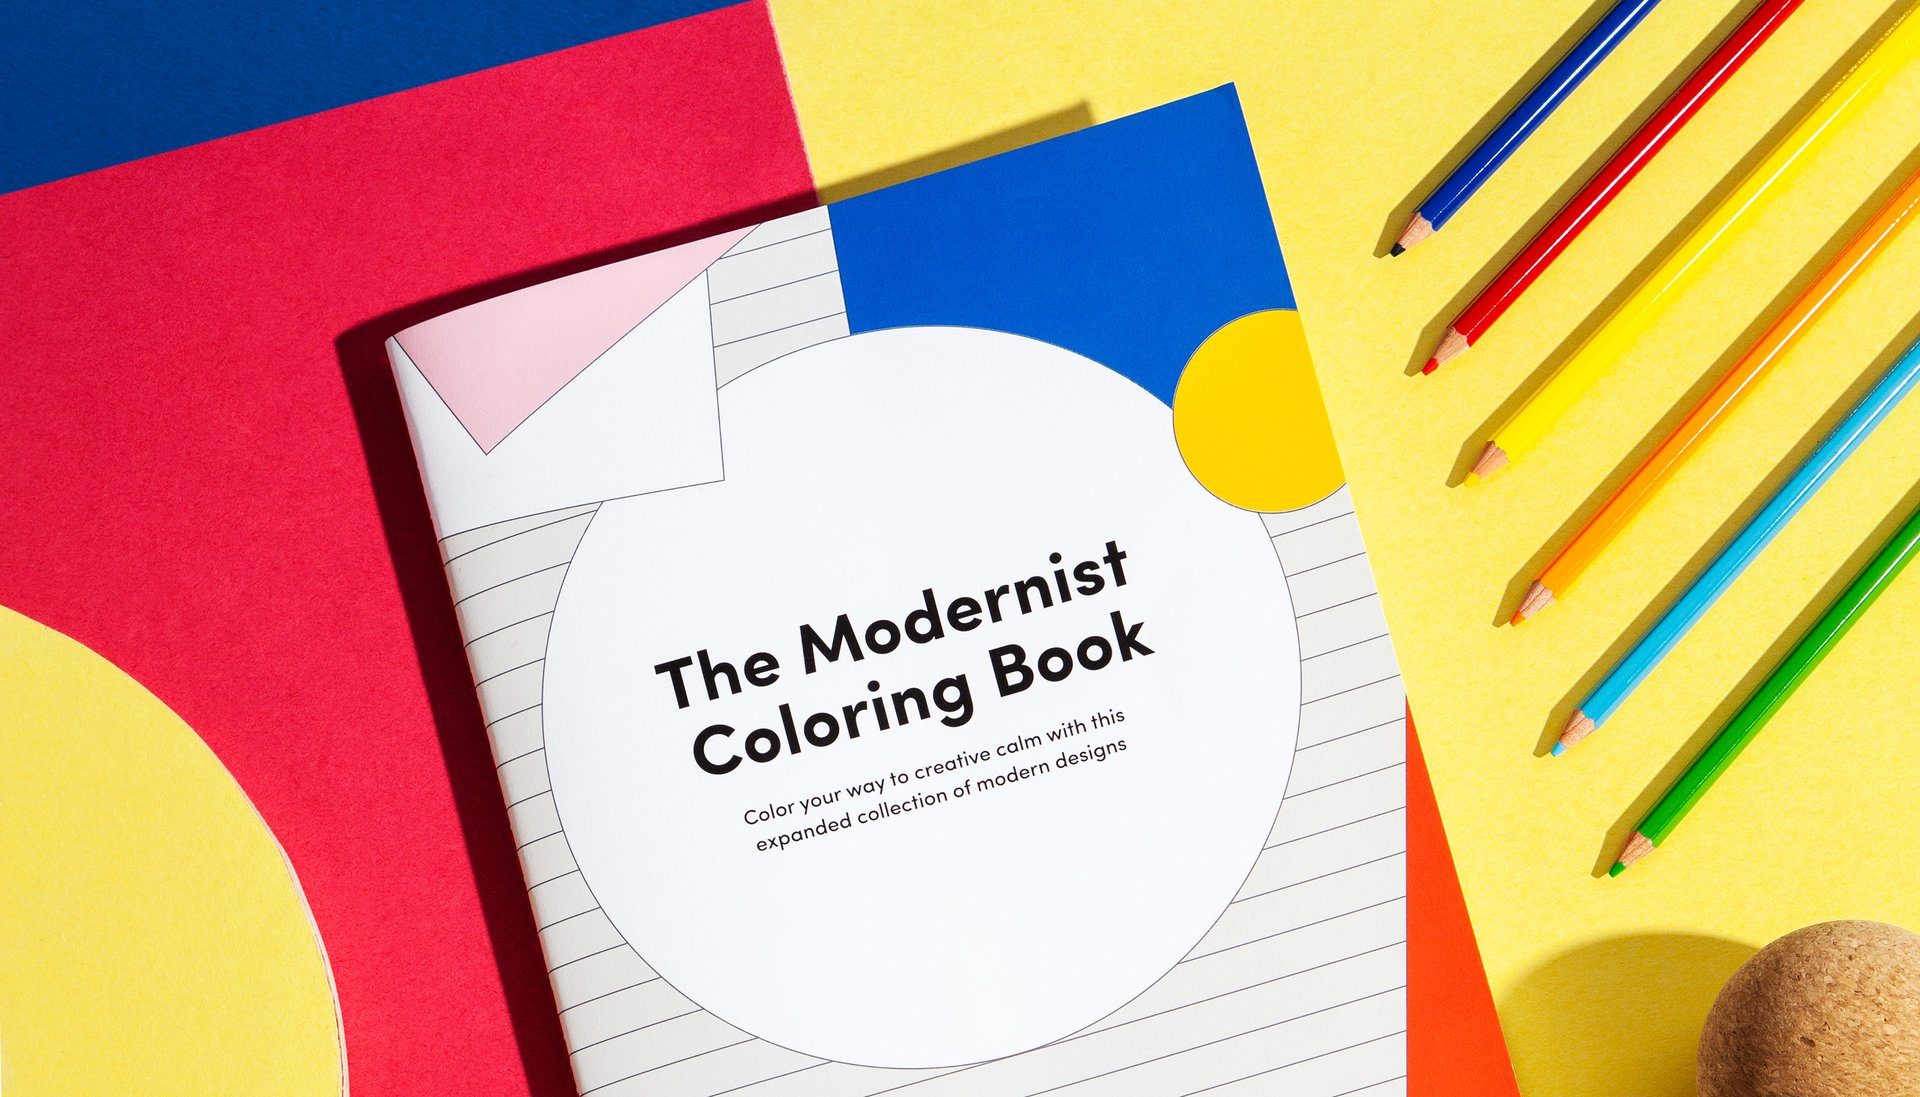 Modernist-Coloring-Book-Web-Banner_1920x.jpg